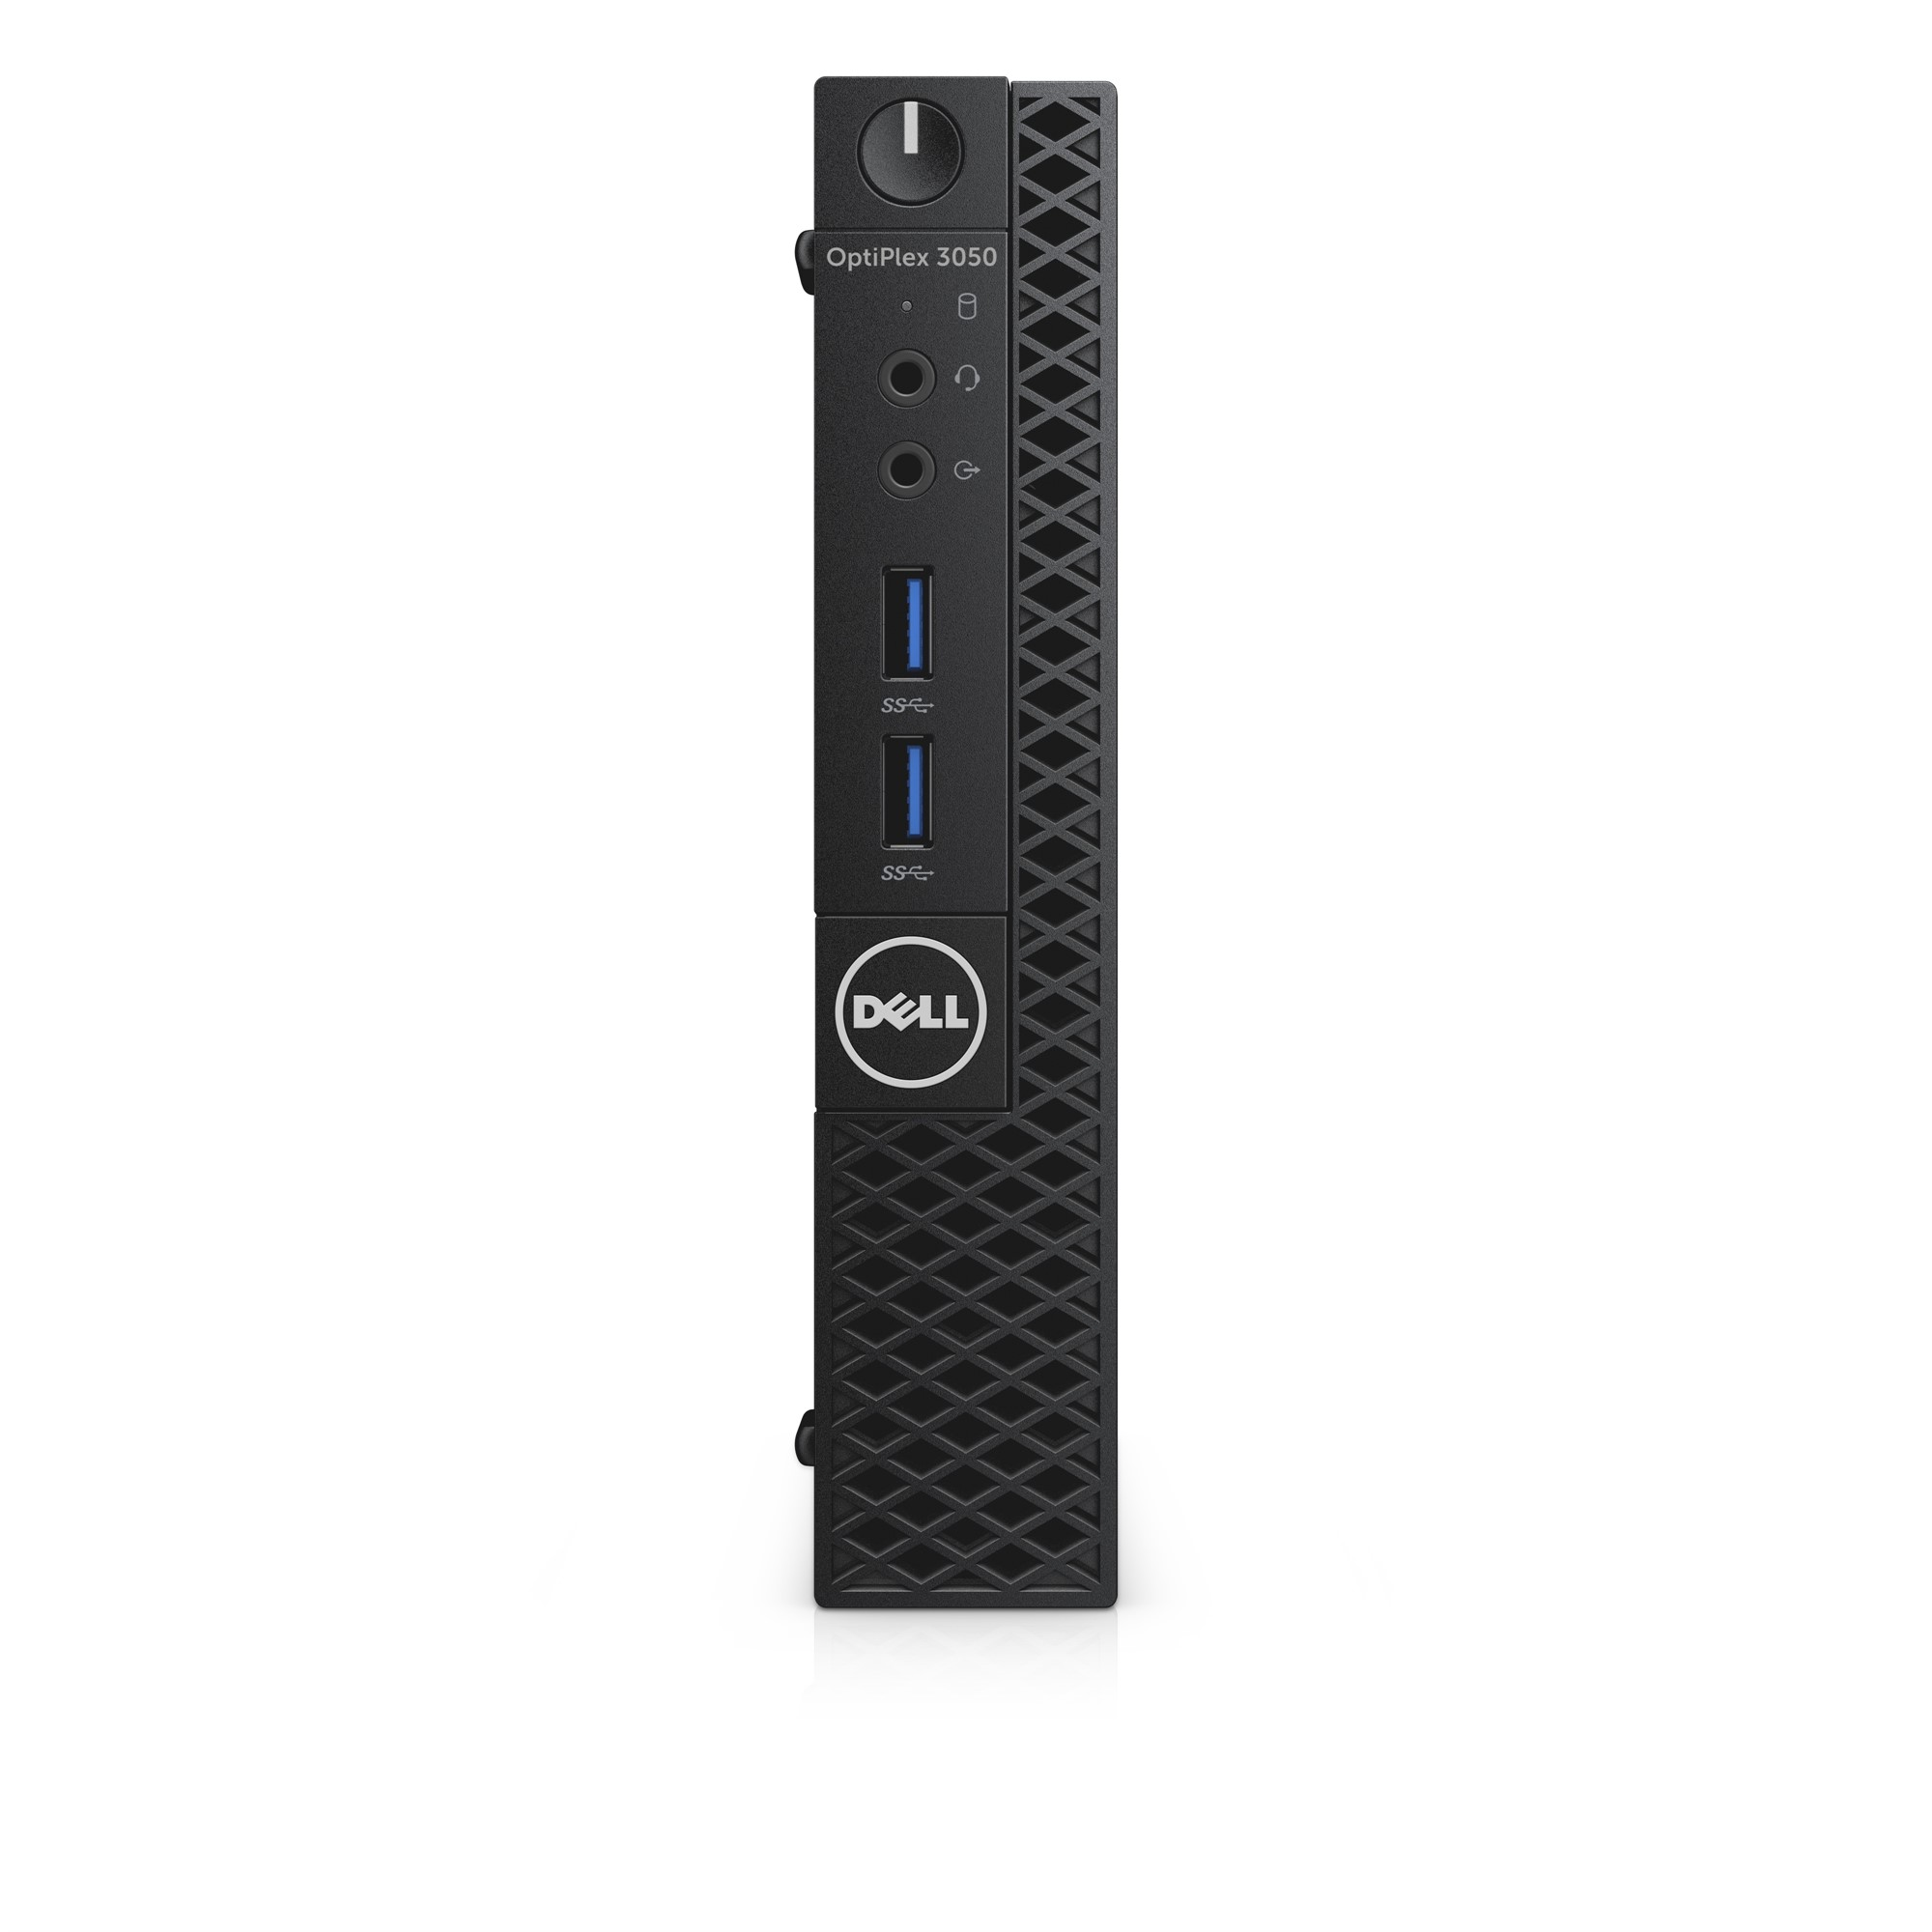 DELL OPTIPLEX 3050 2.70GHZ I5-7500T MICRO TOWER BLACK MINI PC